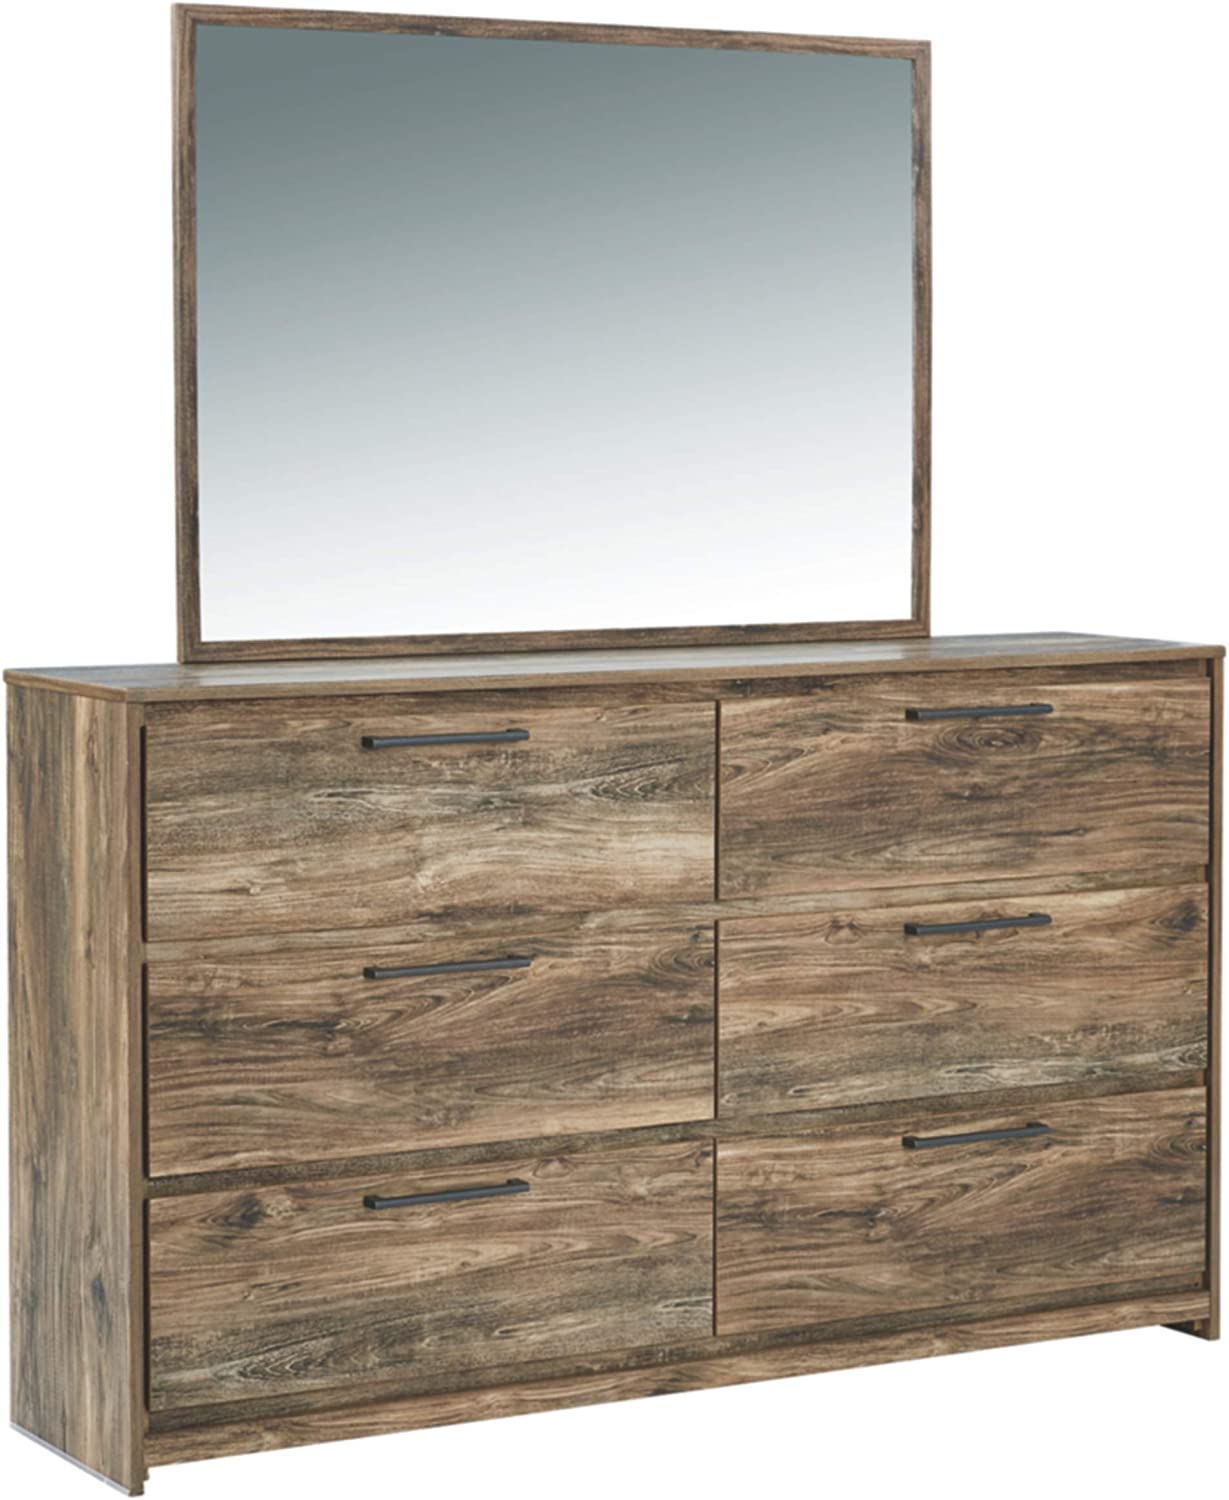 Signature Design by Ashley Rusthaven Bedroom Mirror, Brown